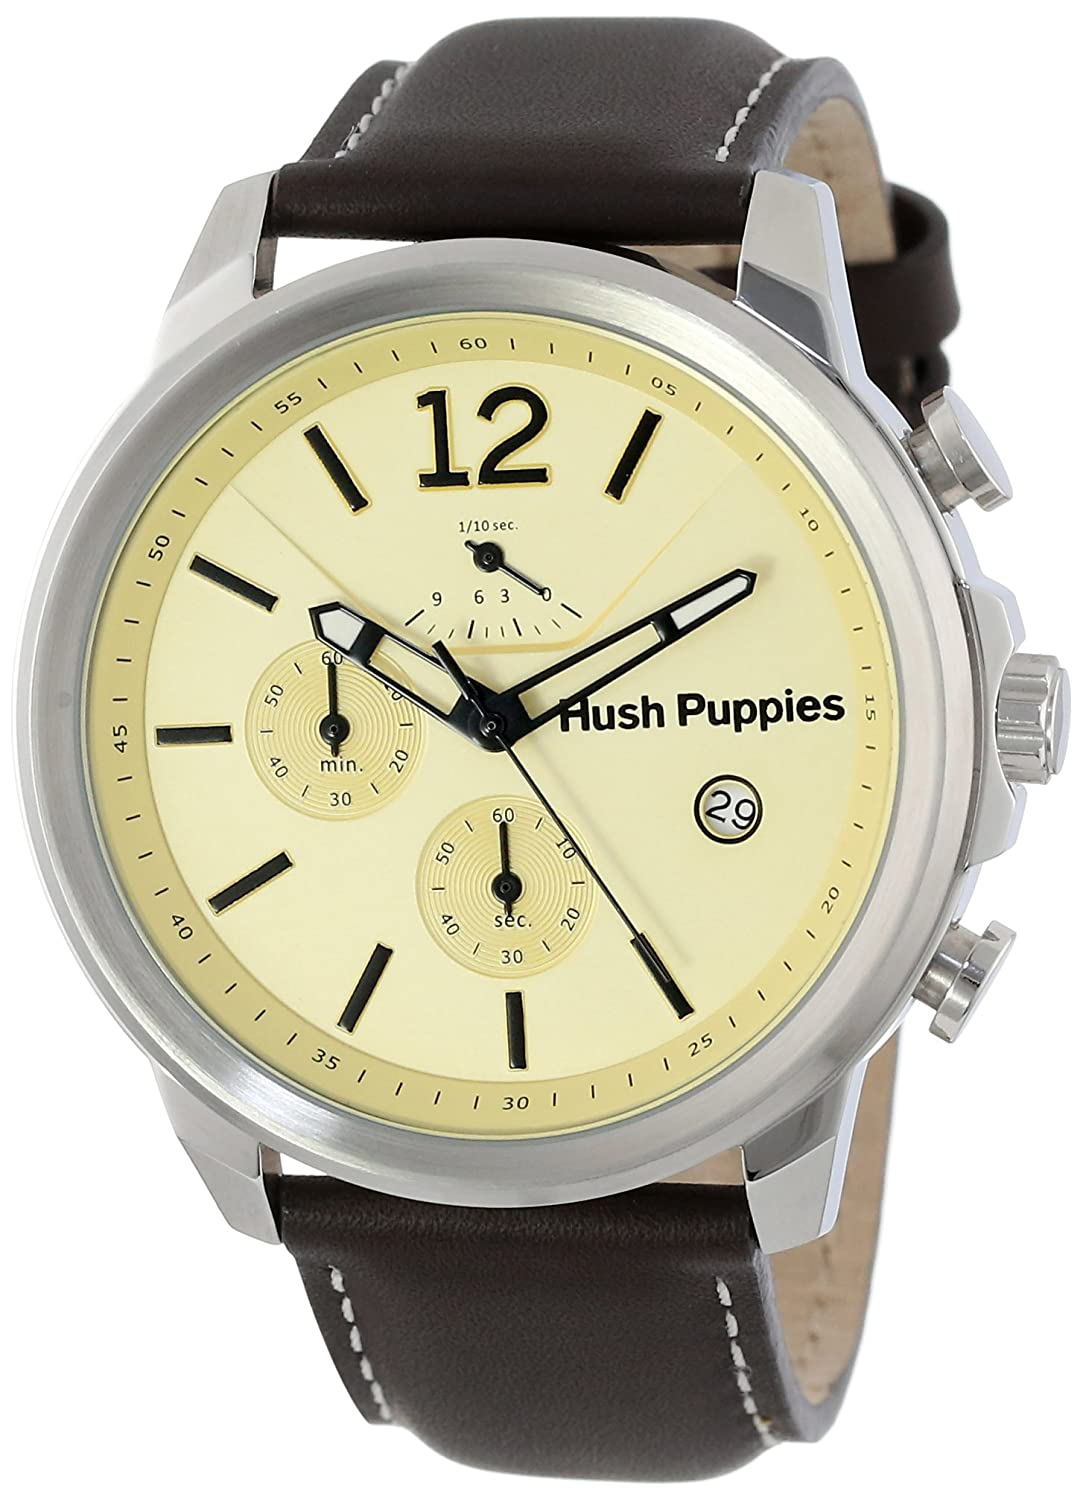 Hush Puppies Orbz Men'Armbanduhr Analog Automatik Leder braun HP .2.2519 .6065 m